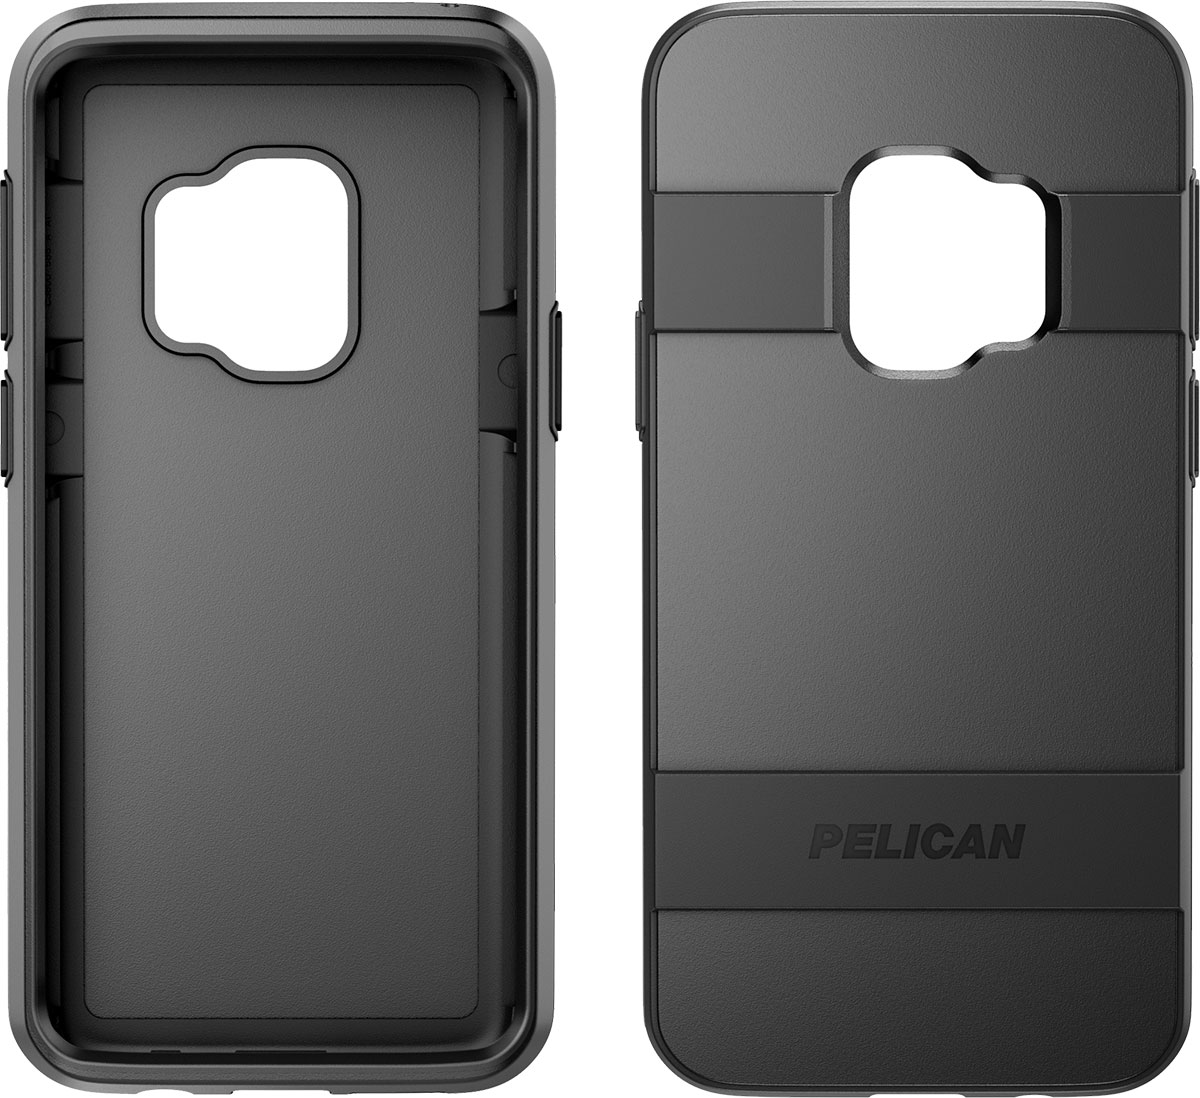 pelican c38030 protective voyager s9 phone case